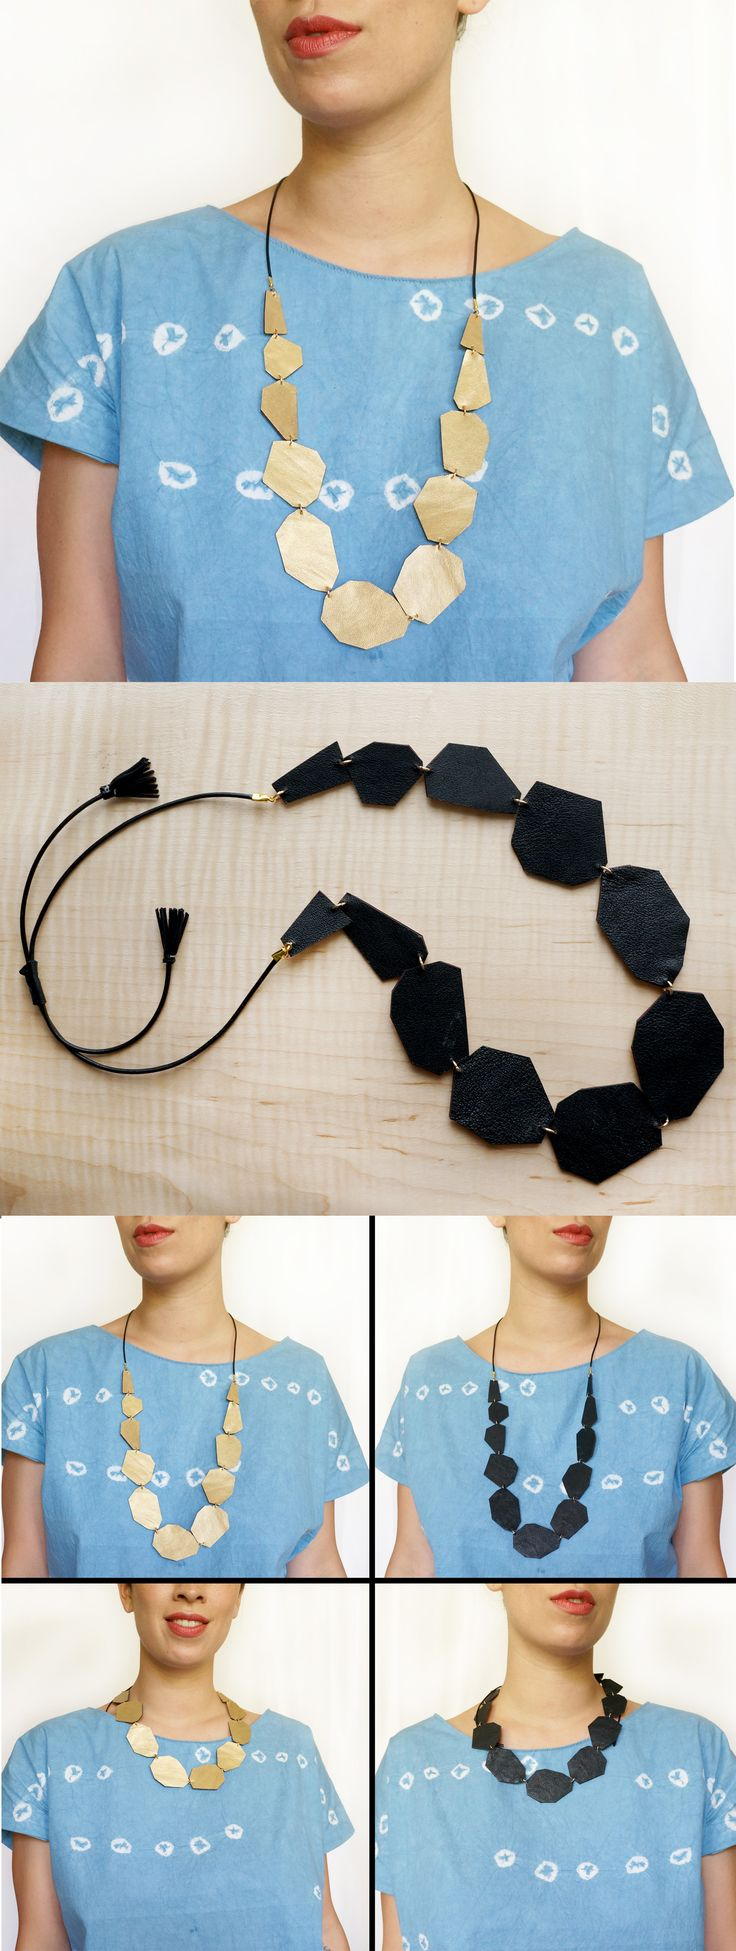 Gold & Black Reversible Leather statement necklace | Long - Short adjustable length + crafted from reclaimed leather  | Scandinazn